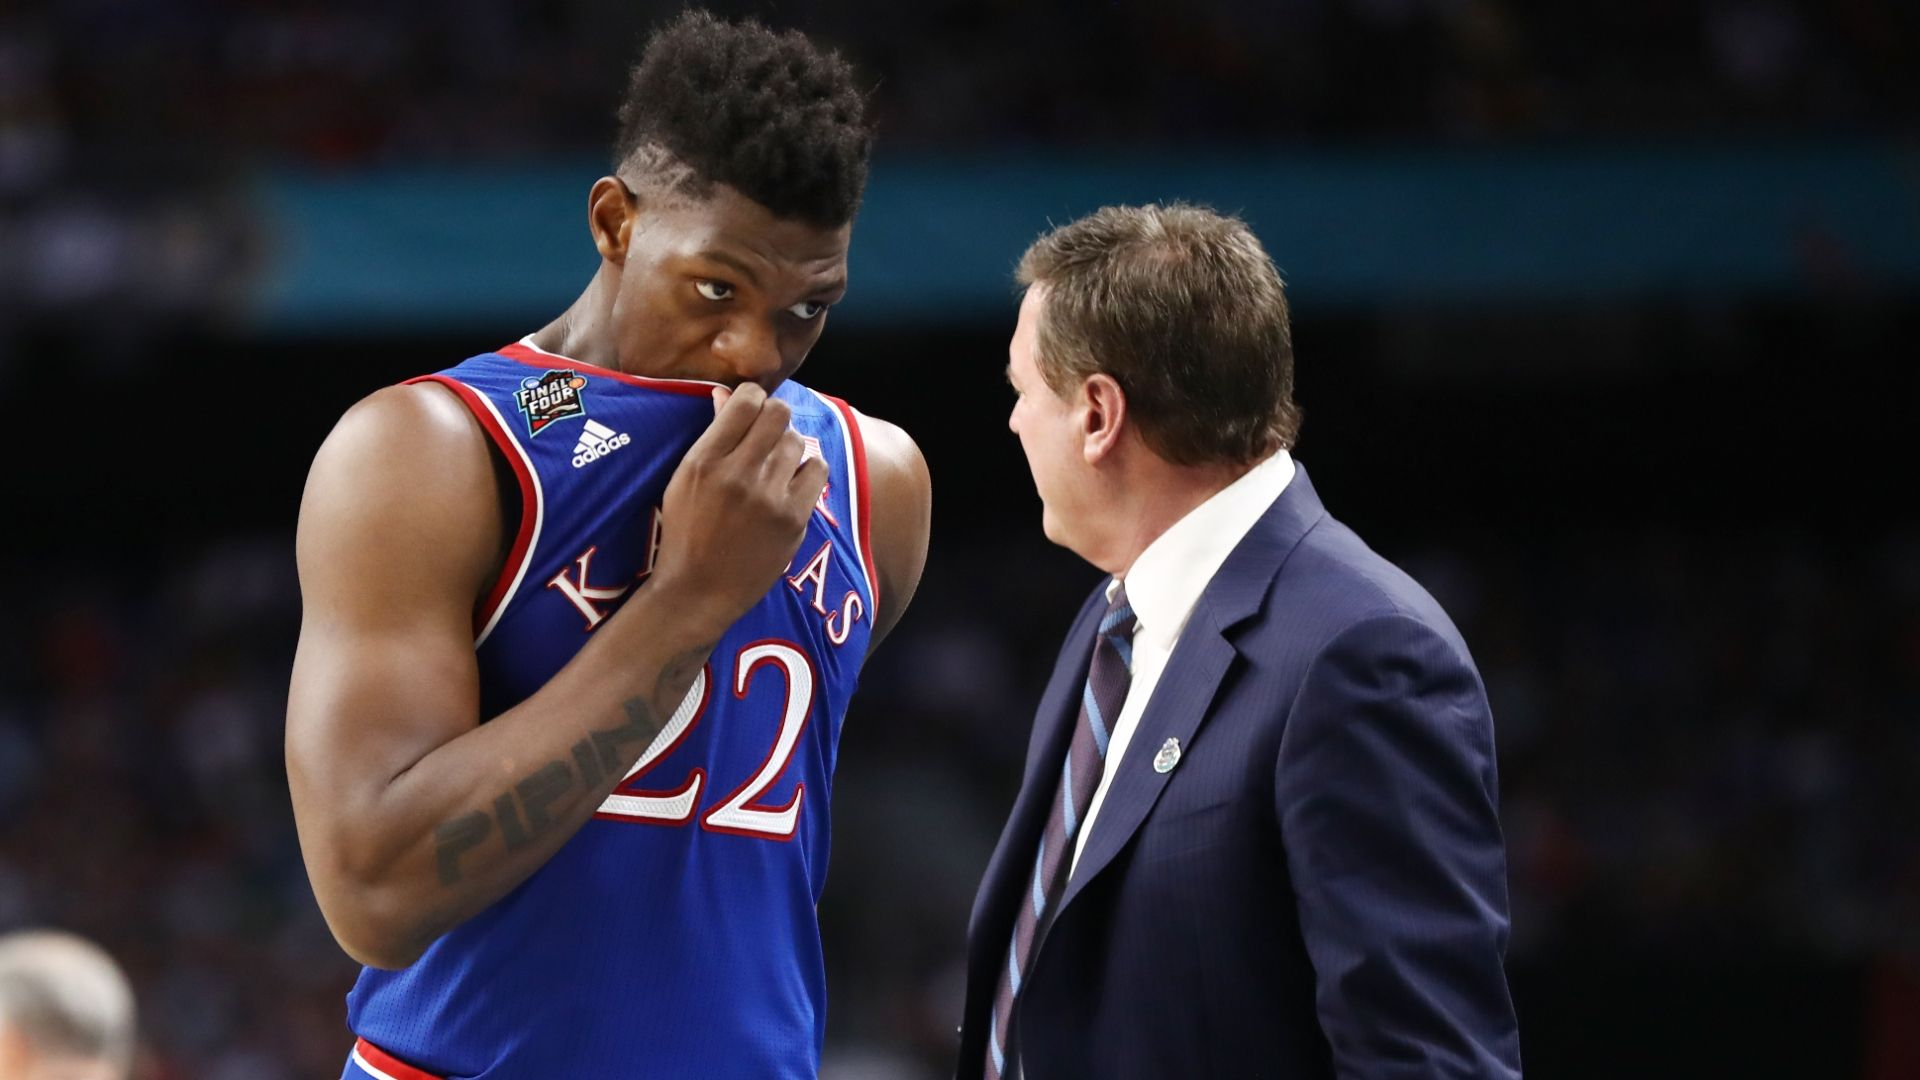 Text messages reveal Kansas coaches knew of violations